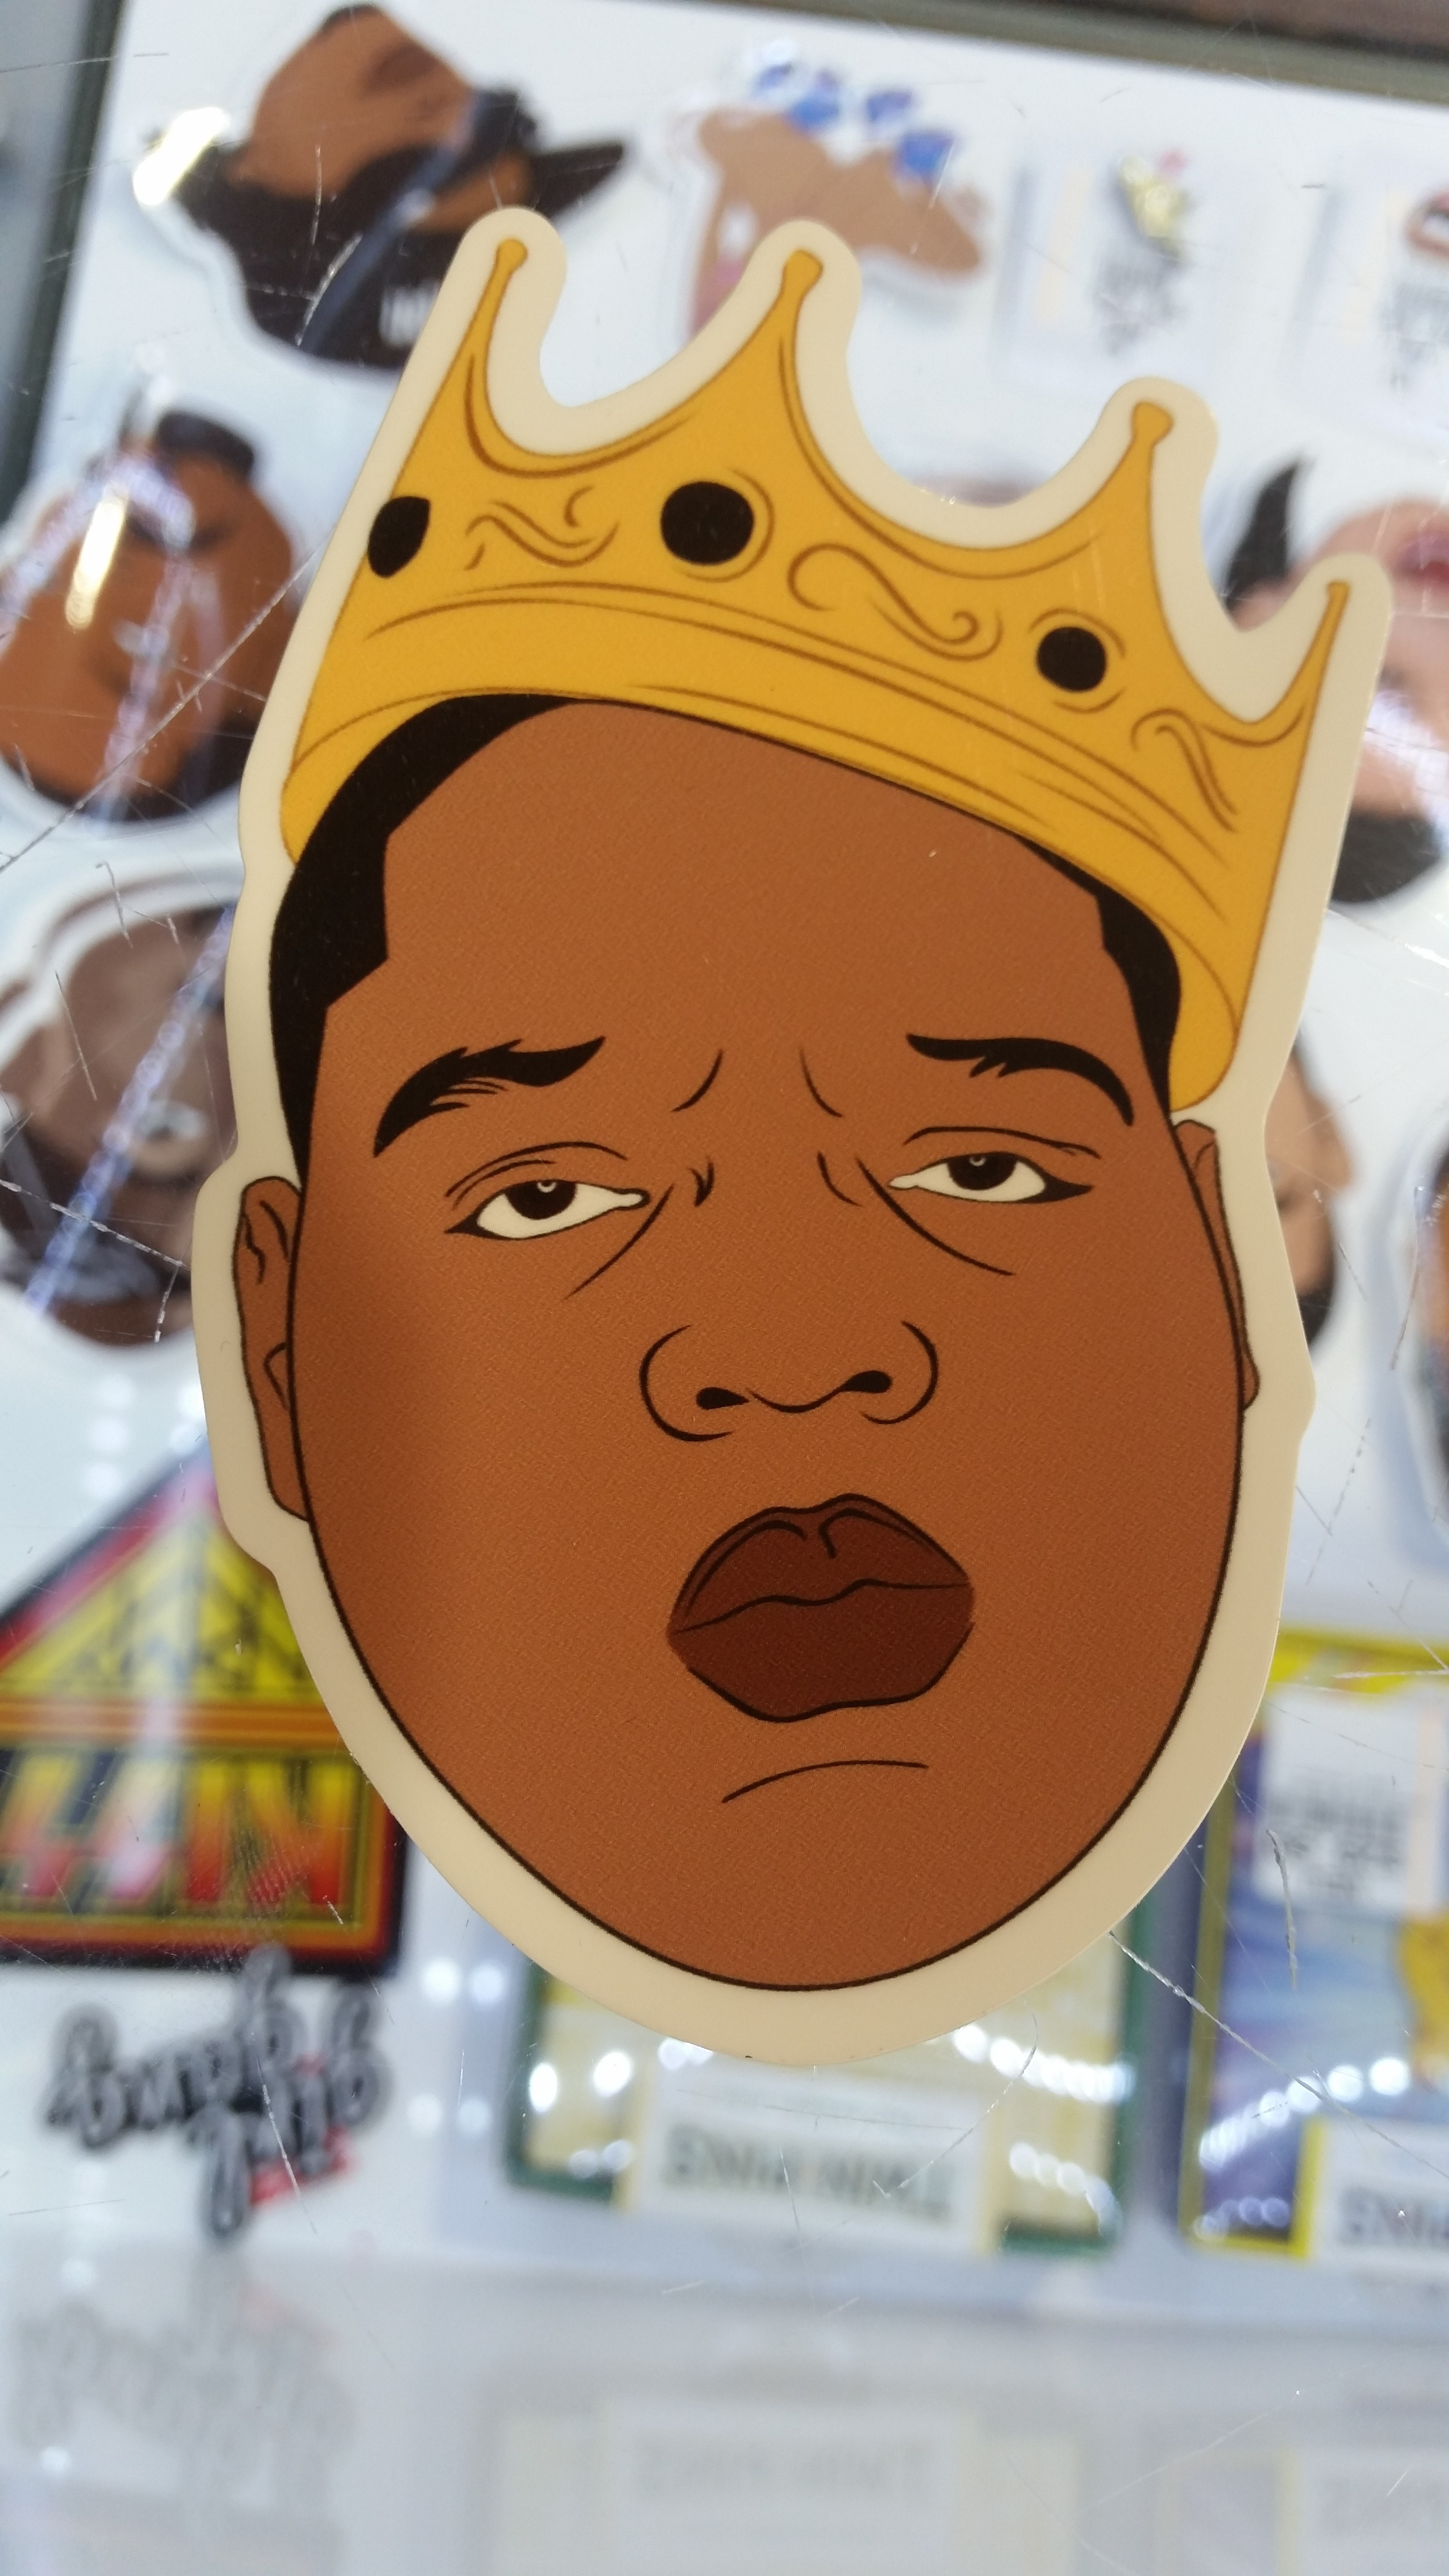 Notorious Big Crown Sticker Real Groovy The animated series follows the adventures of bobby kid notorious evans as he moves and shakes deals all over. real groovy